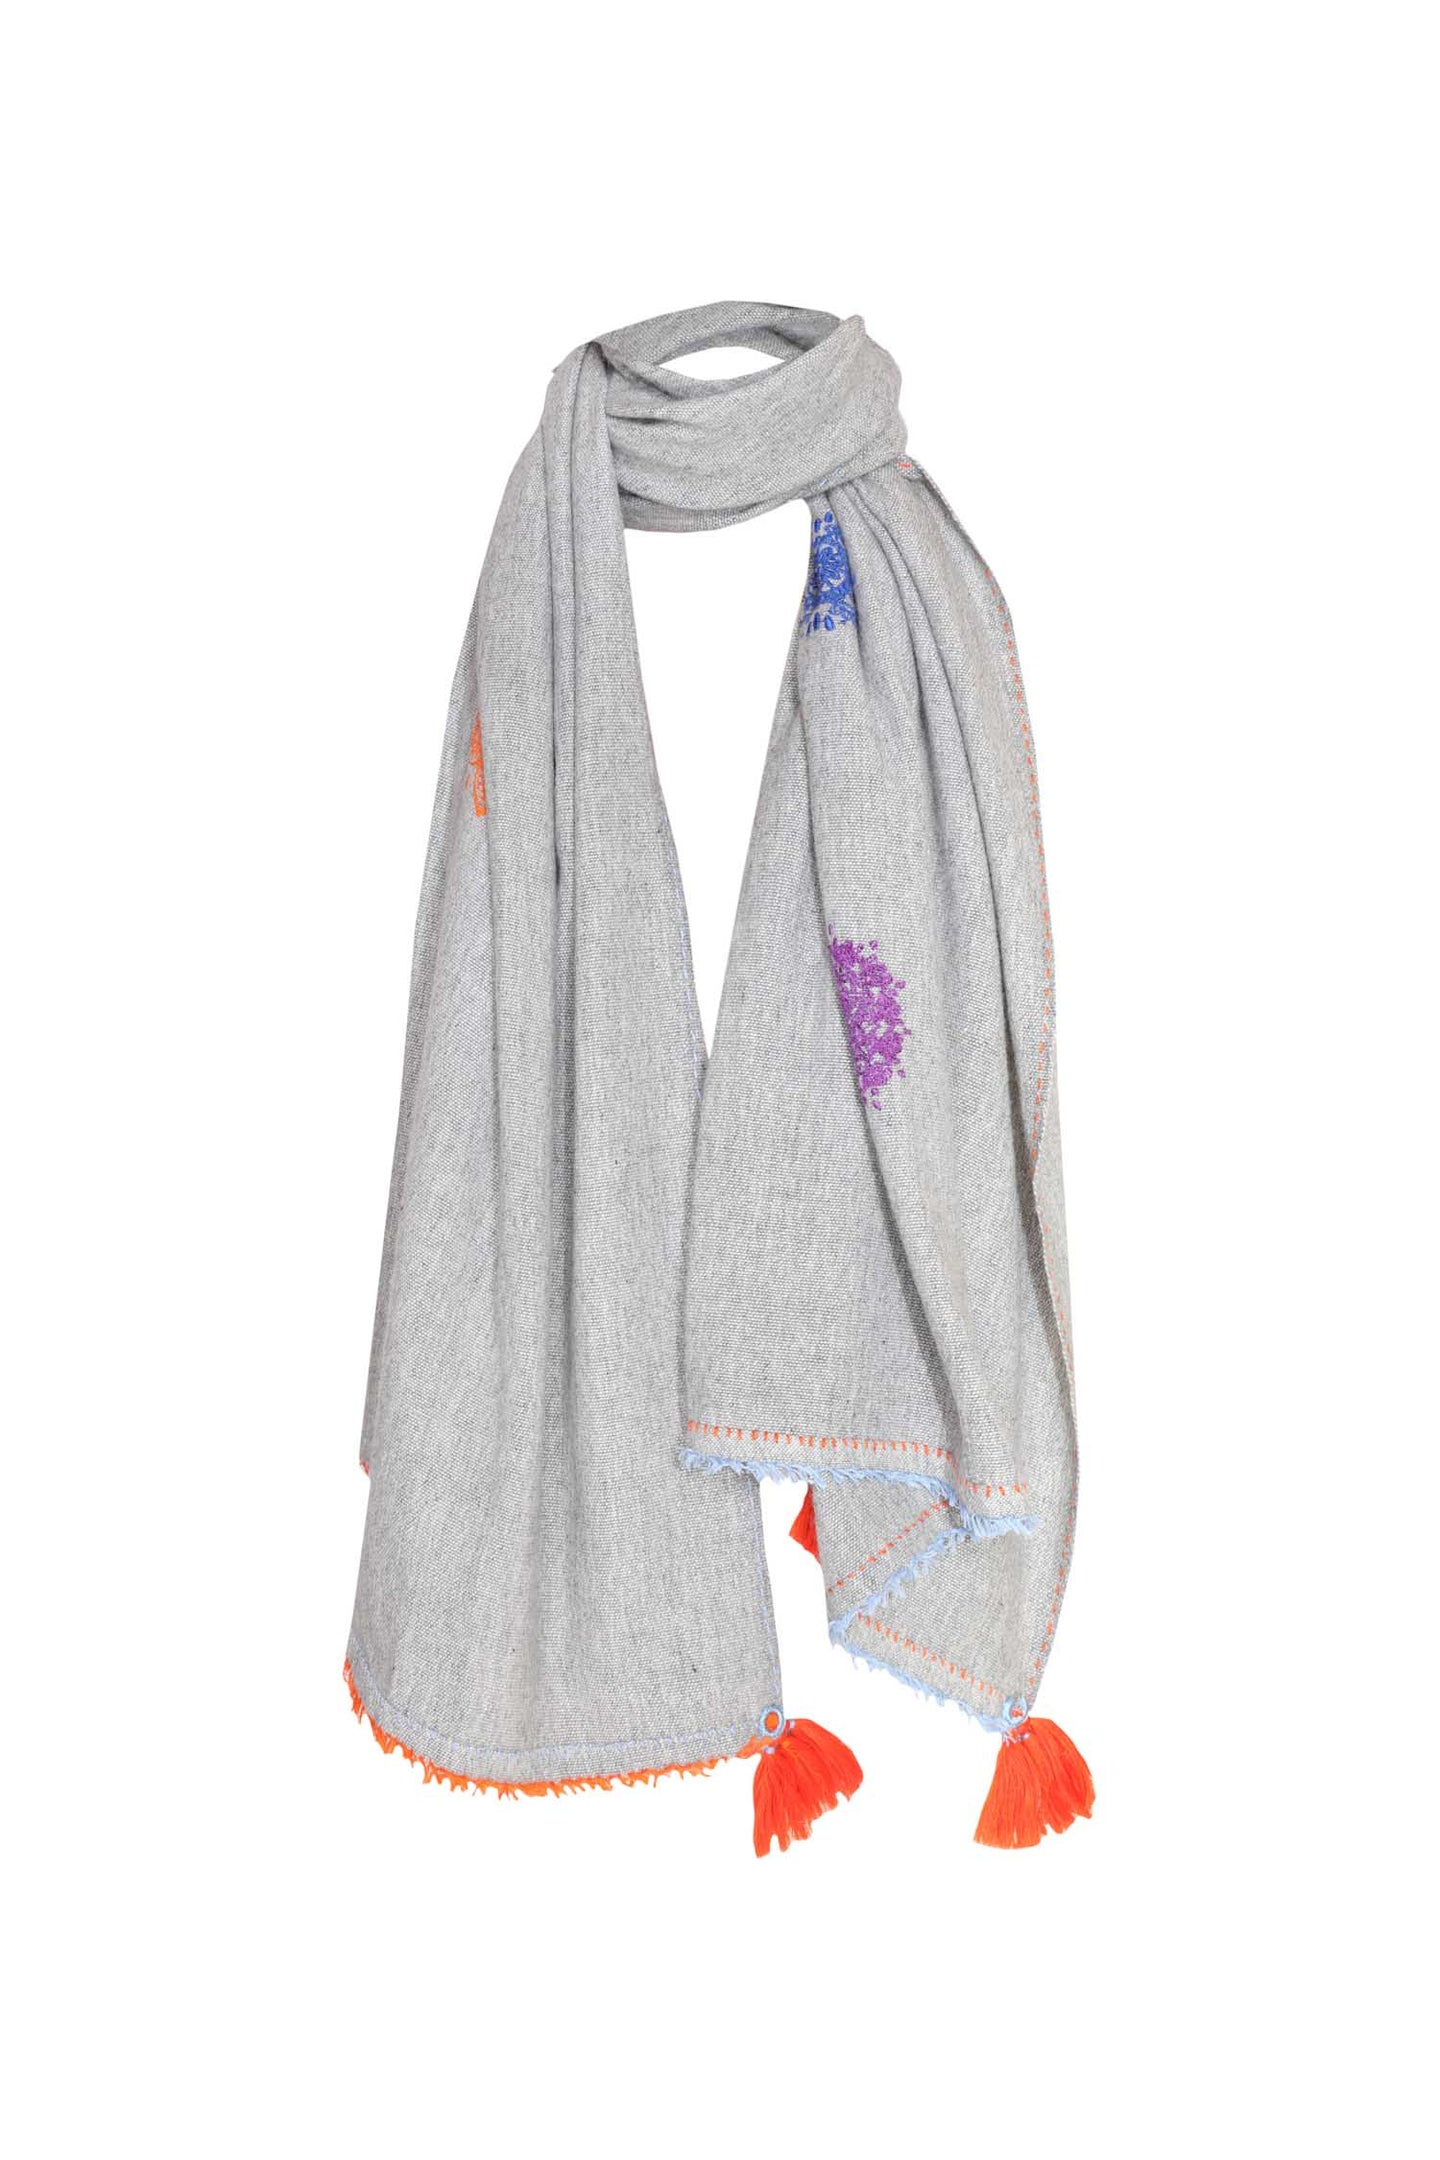 Chakra Shawl - Light Grey